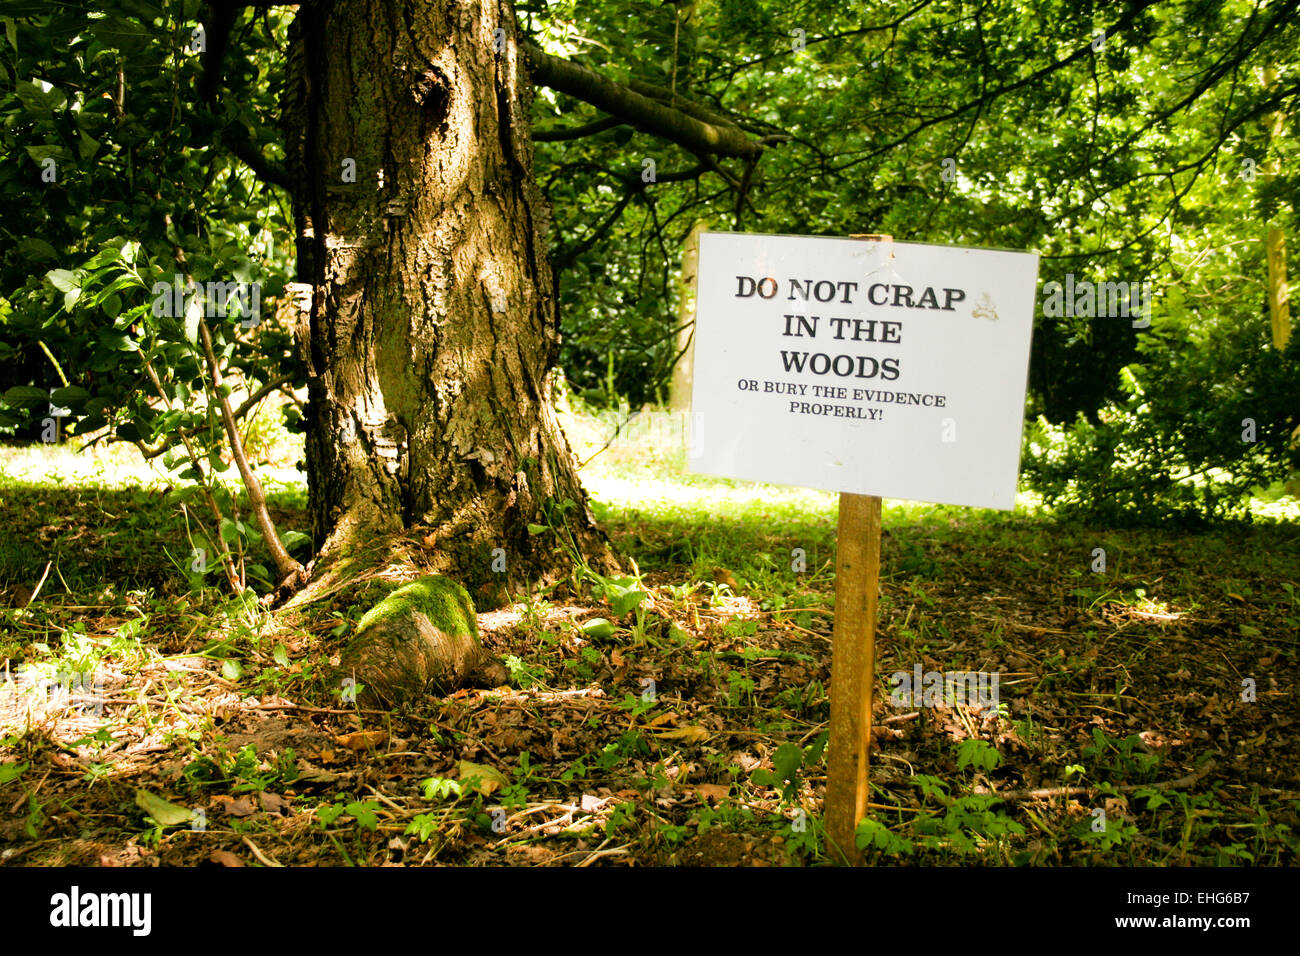 Funny sign in the woods at a festival. Stock Photo